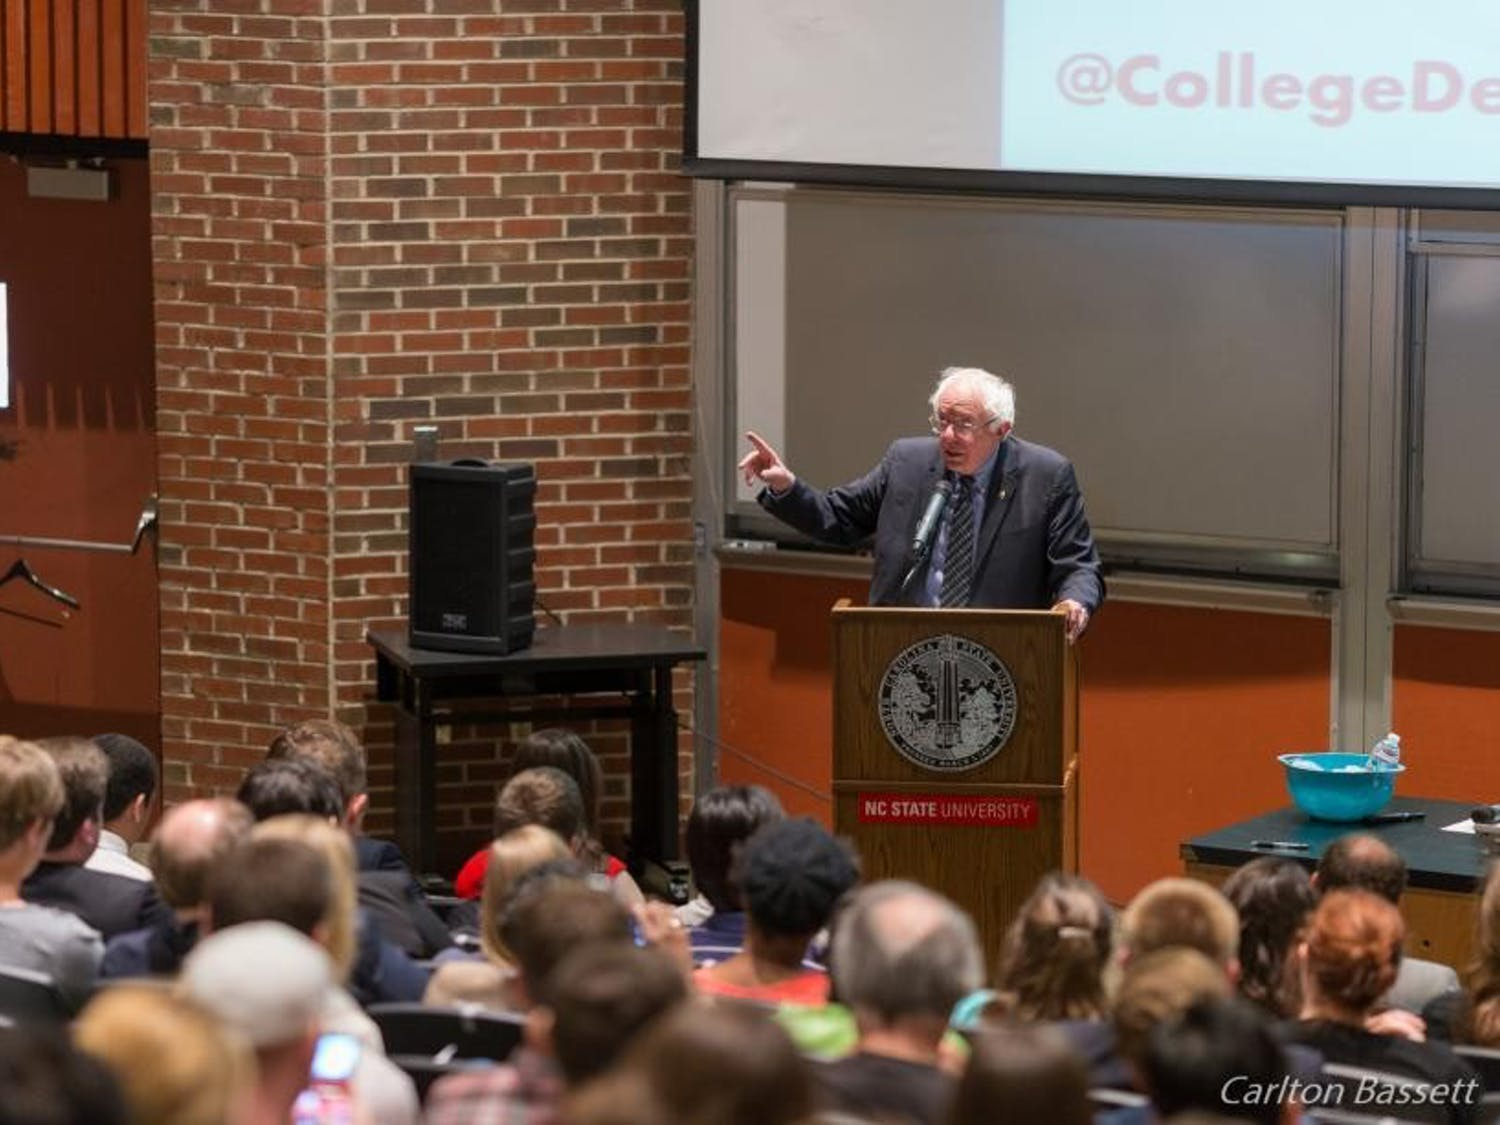 Sen. Bernie Sanders will visit Duke University Jan. 19 to discuss economic equality. Sanders visited N.C. State University April 26, 2017. Photo courtesy of sanders.senate.gov.